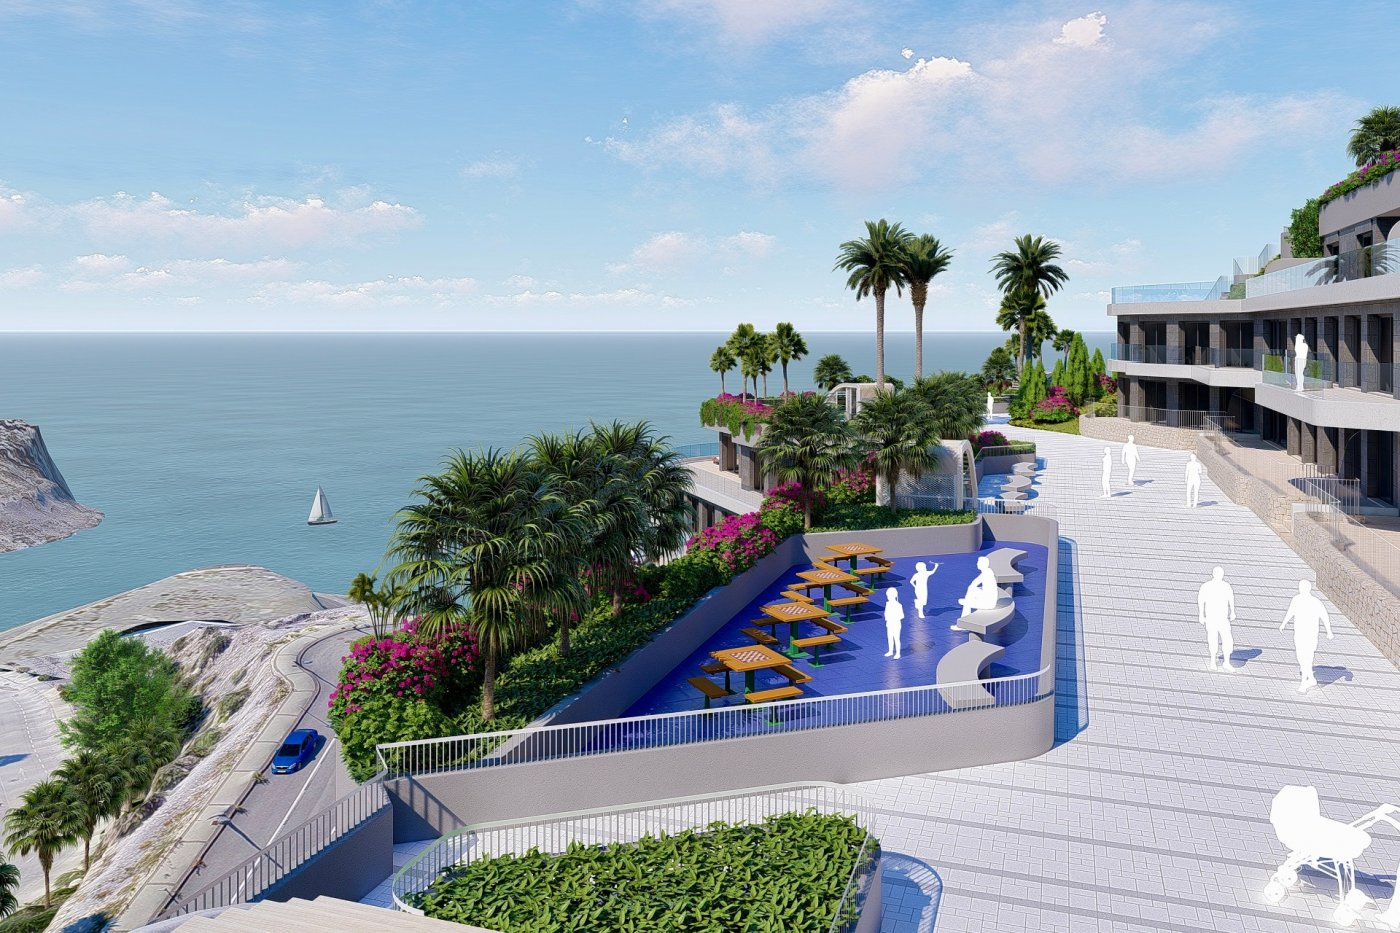 Gallery Image 16 of Luxury 1 bed penthouse with massive 59 m2 solarium and exceptional views